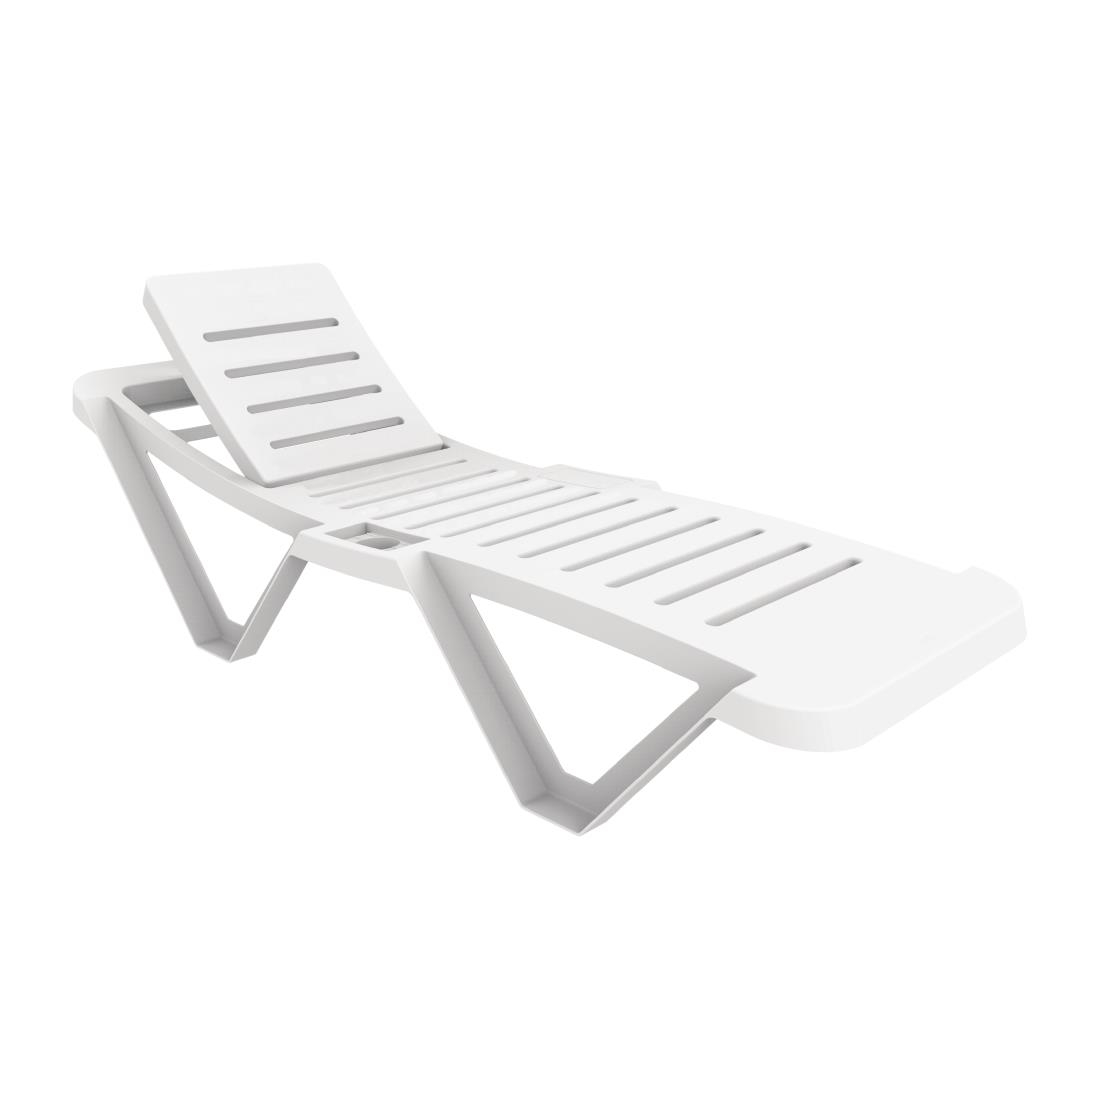 White Plastic Sun Loungers Resol Sun Lounger Pack Of 2